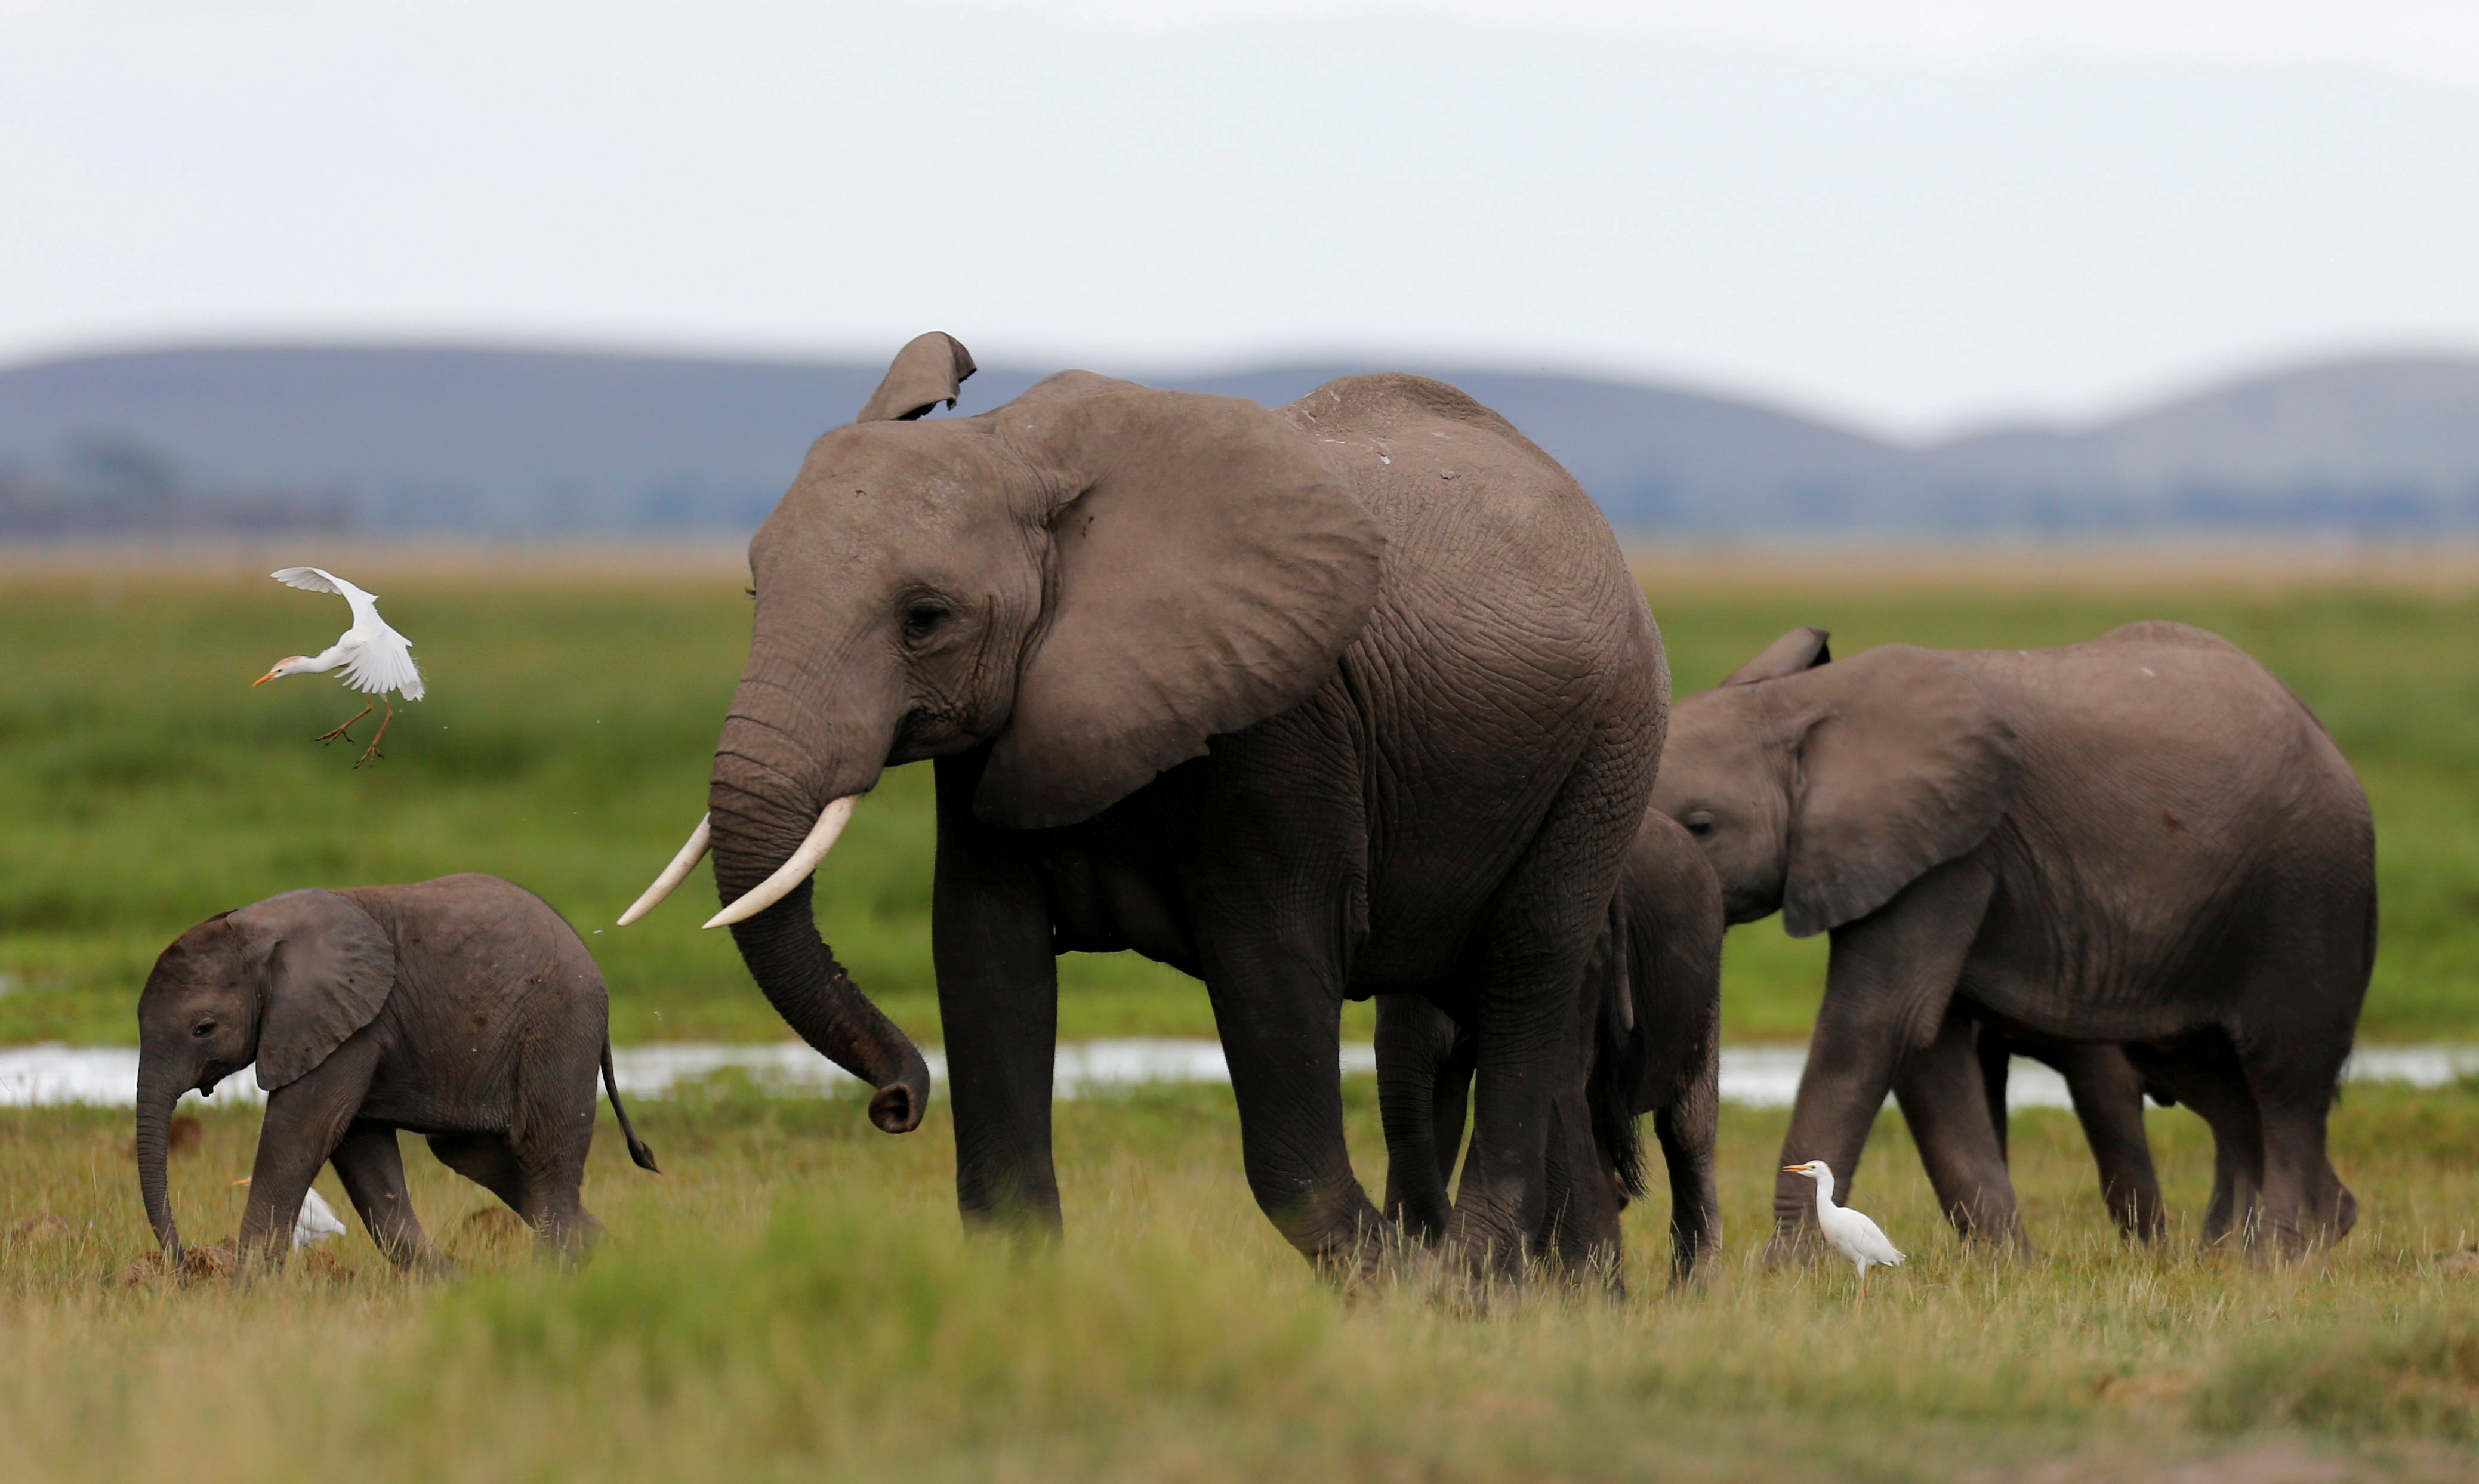 elephants walk in a field